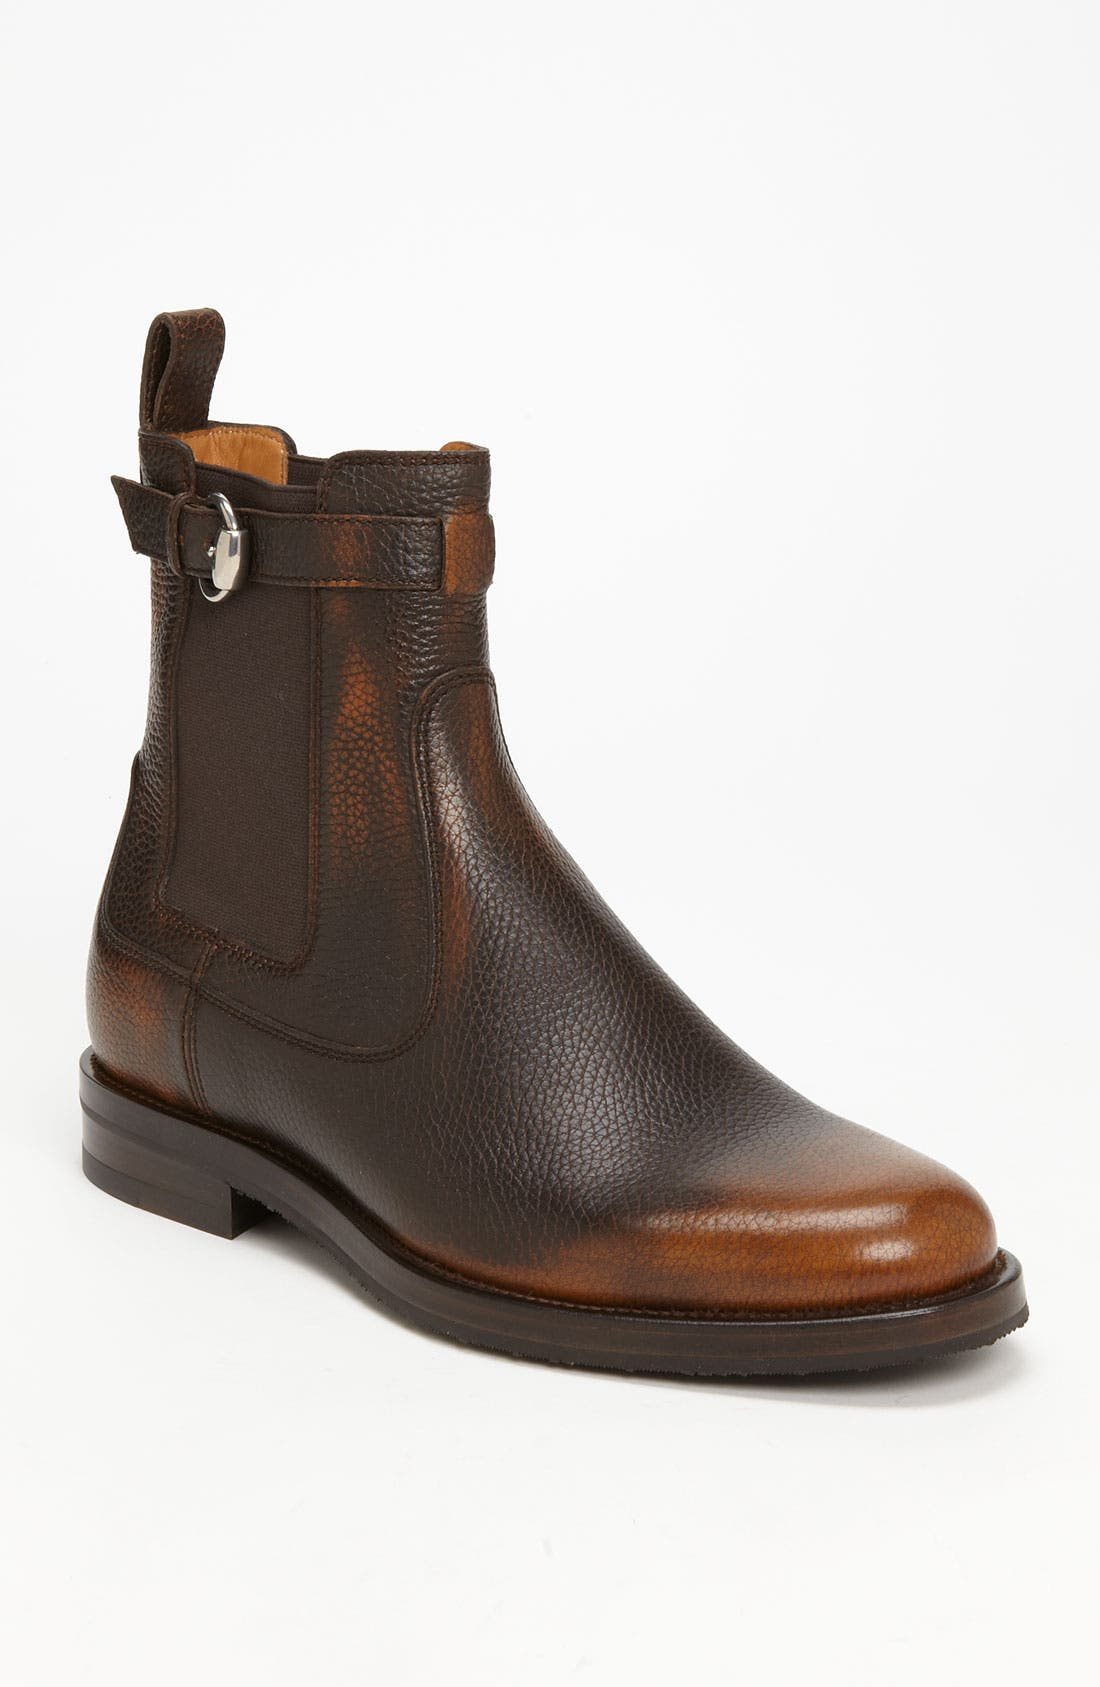 Alternate Image 1 Selected - Gucci 'Royer' Chelsea Boot